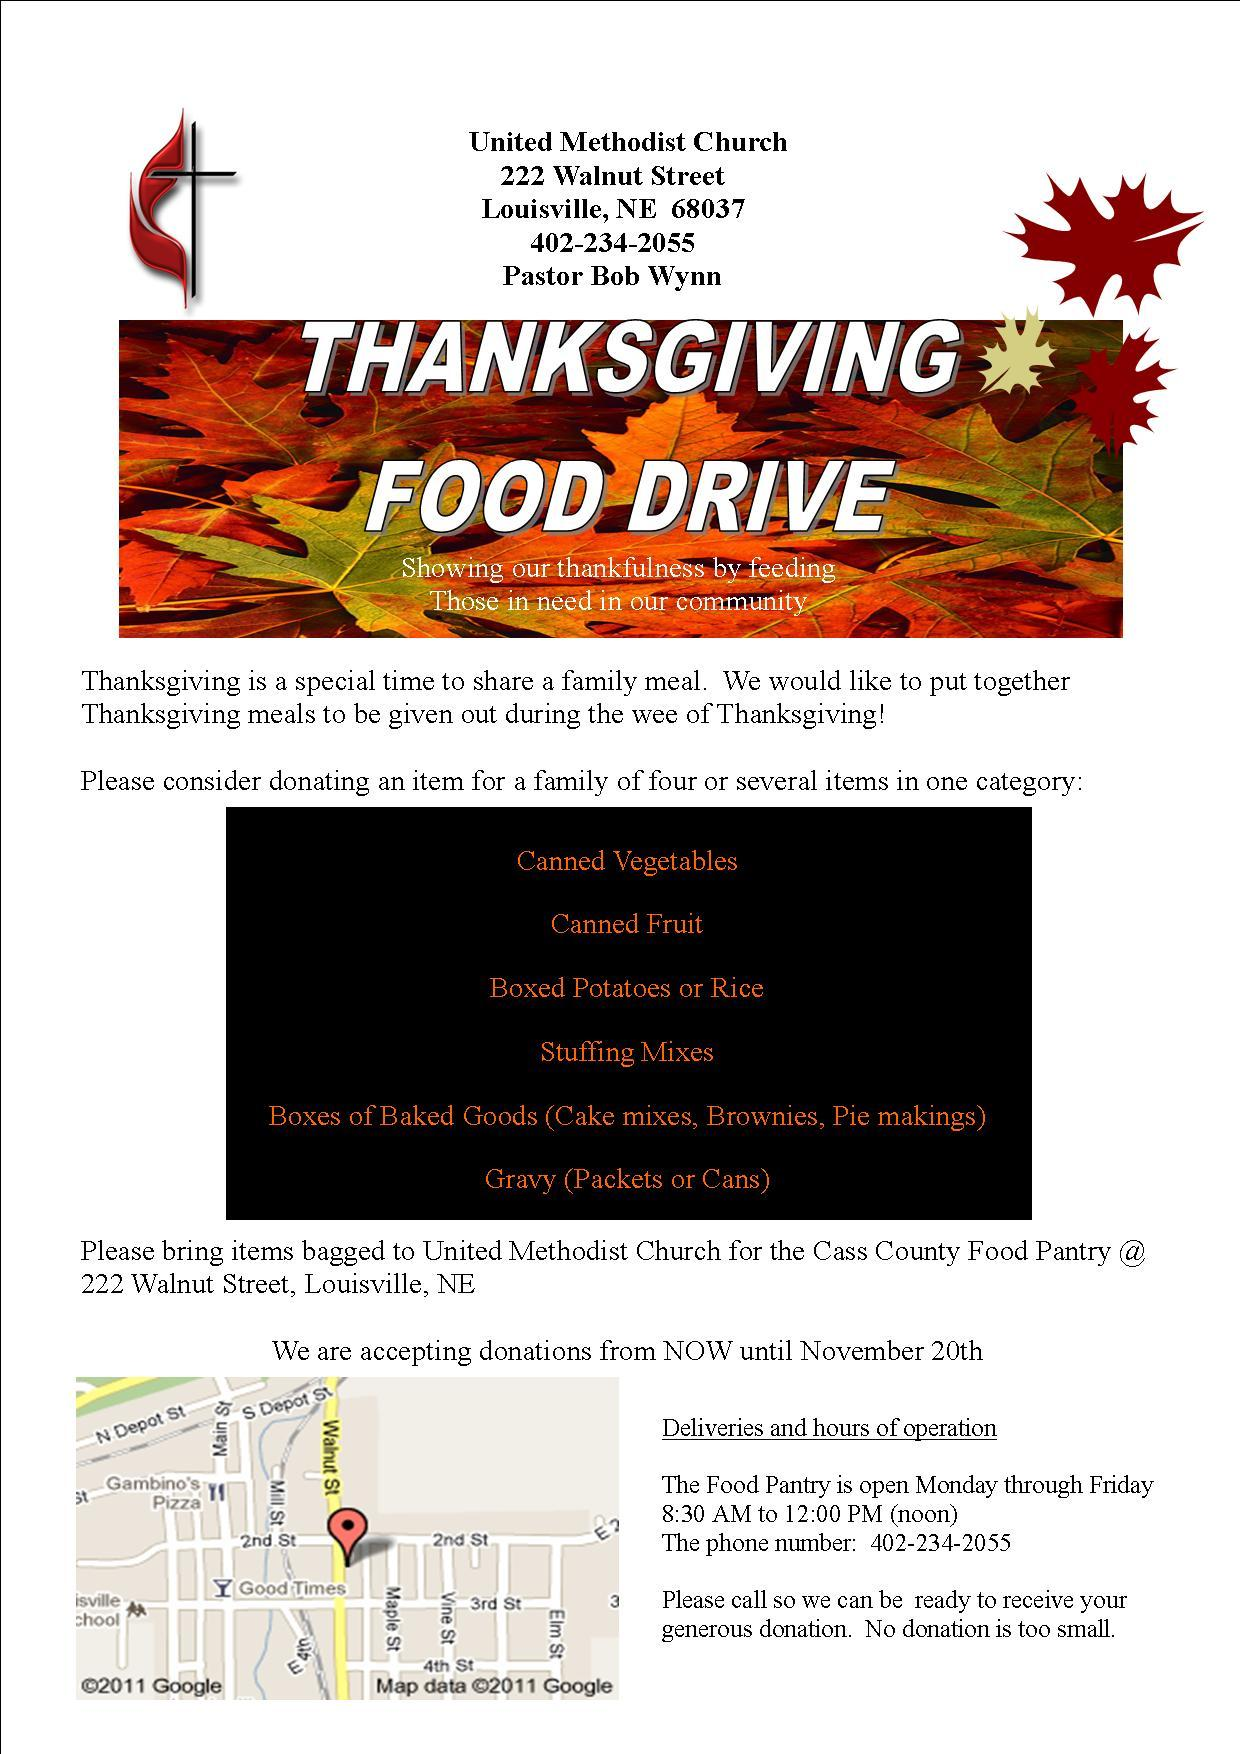 Cass County Food Pantry for Thanksgiving